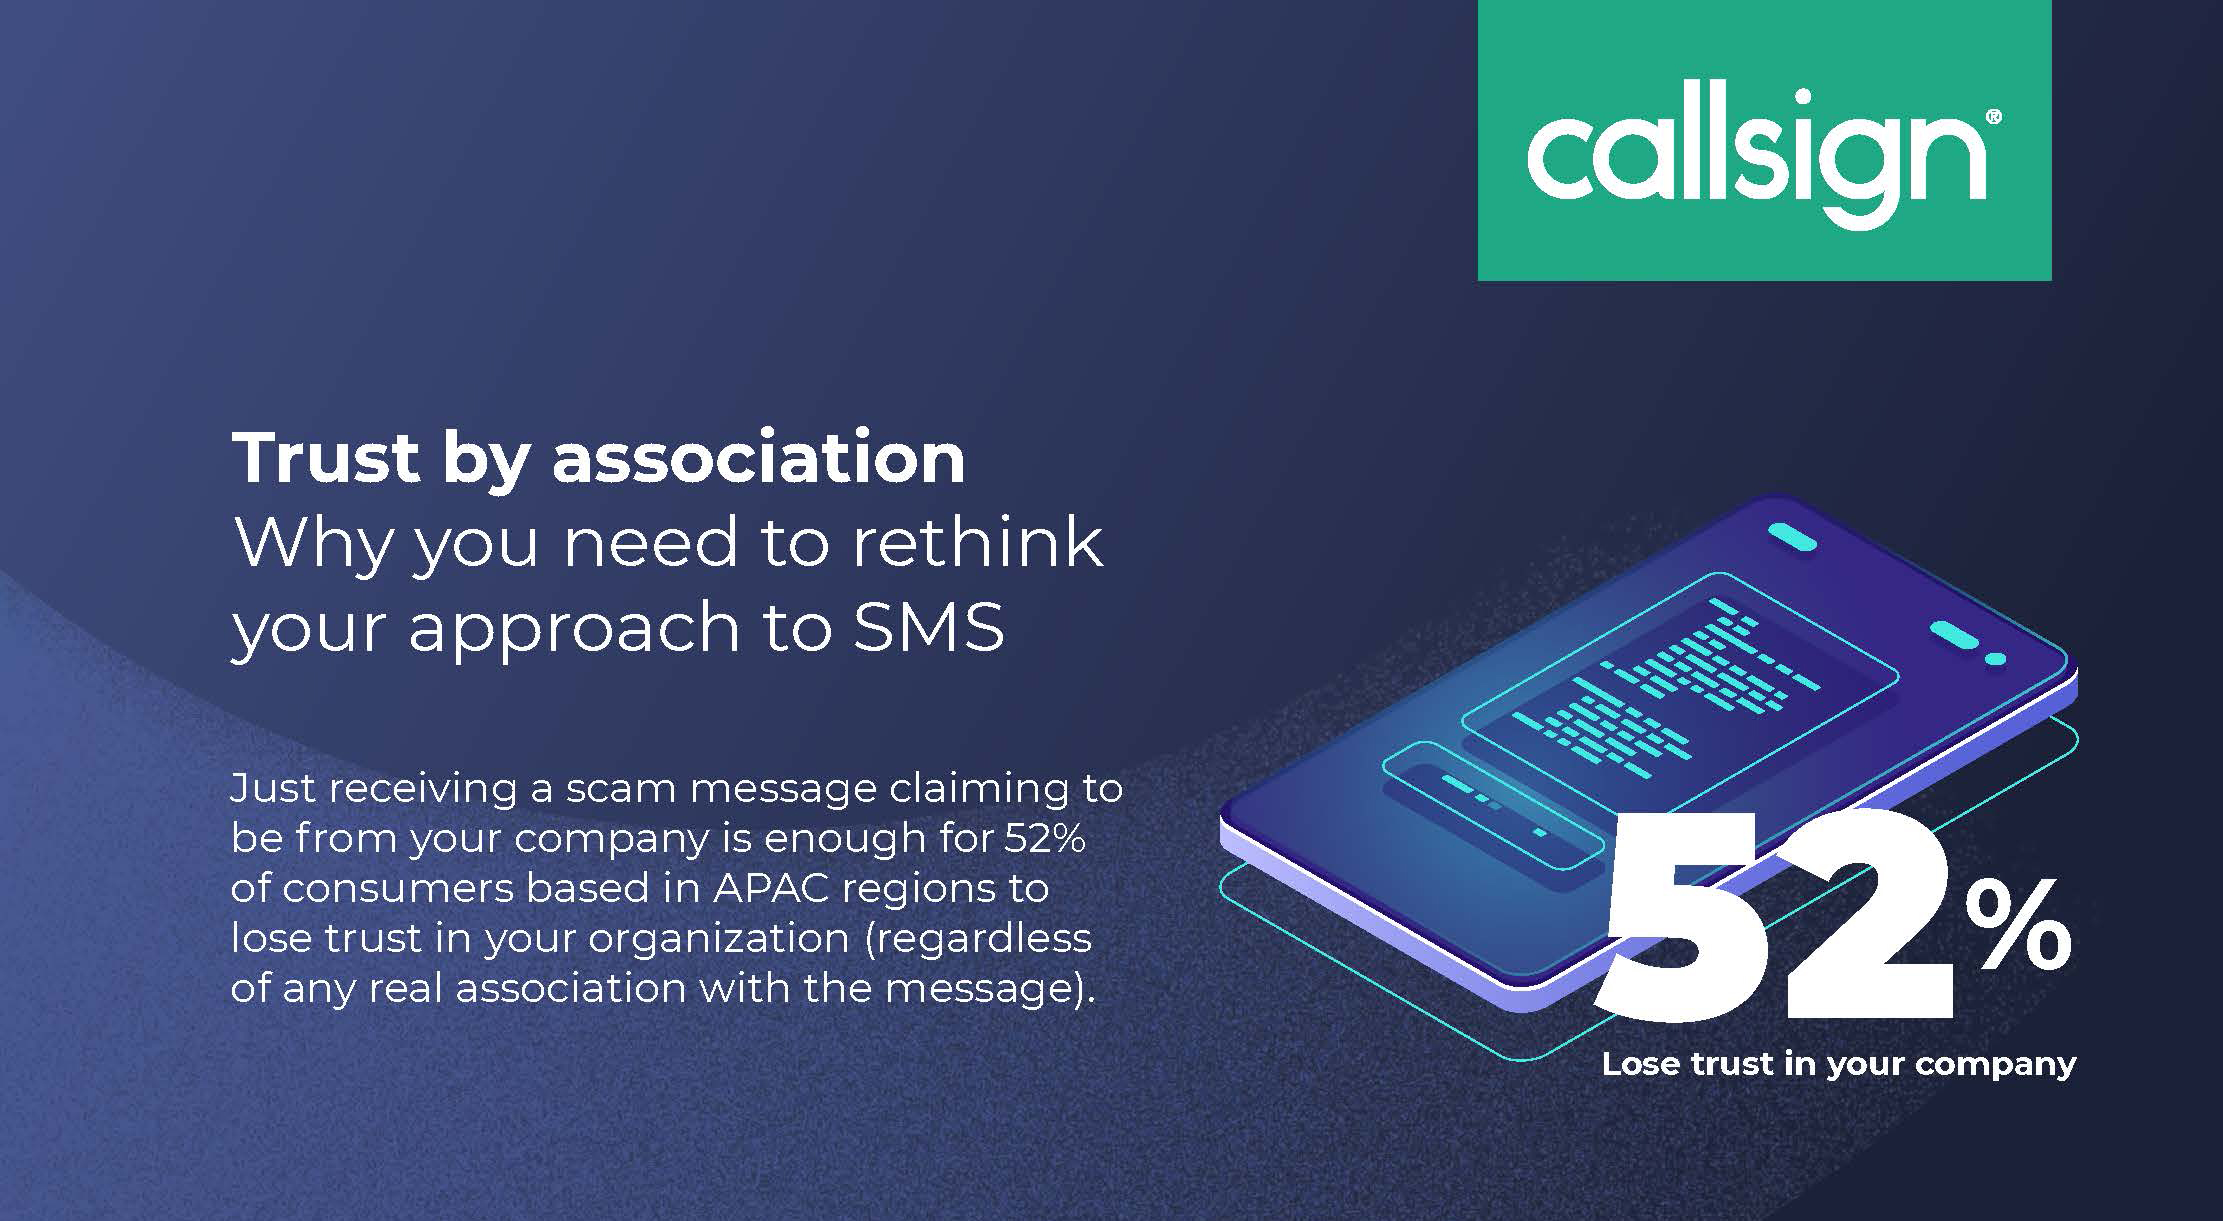 Rethink your SMS approach